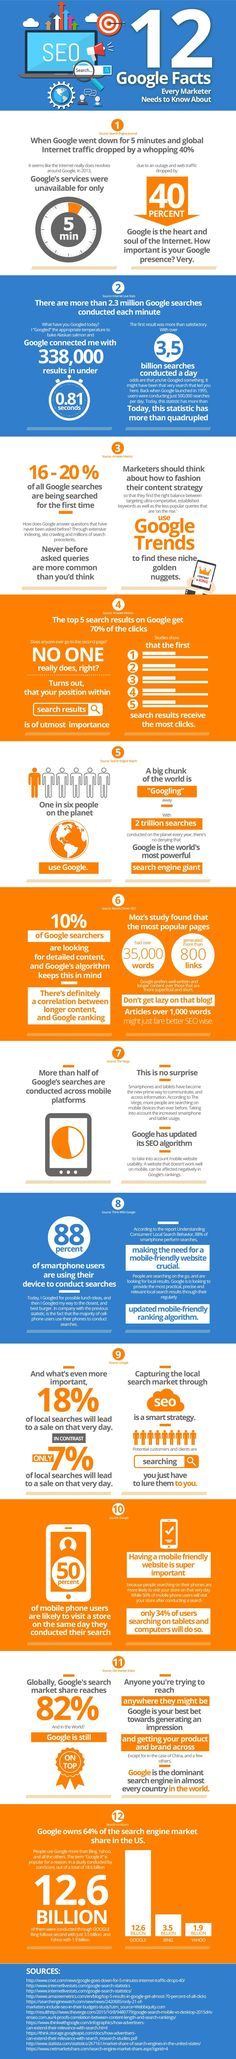 12 Google Facts Every Marketer Should Know About - #Infographic